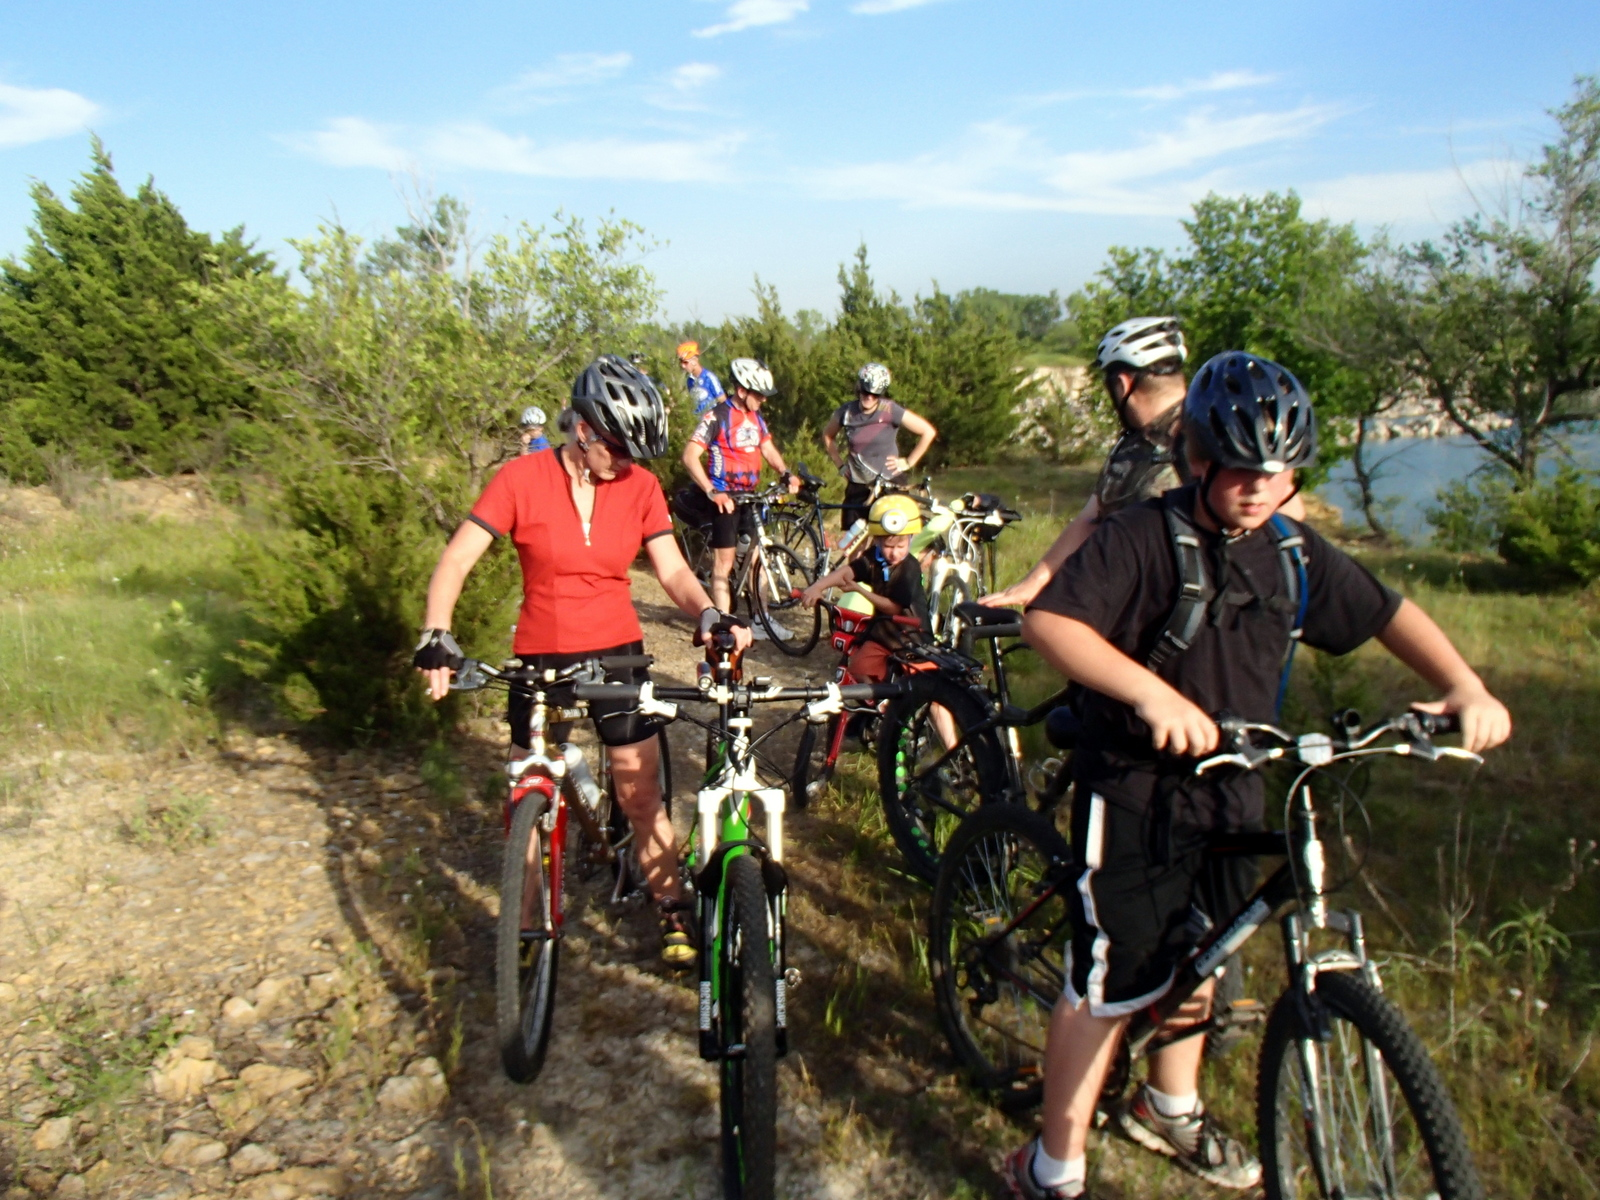 Get Your Grin On at the Lehigh Portland Trails​